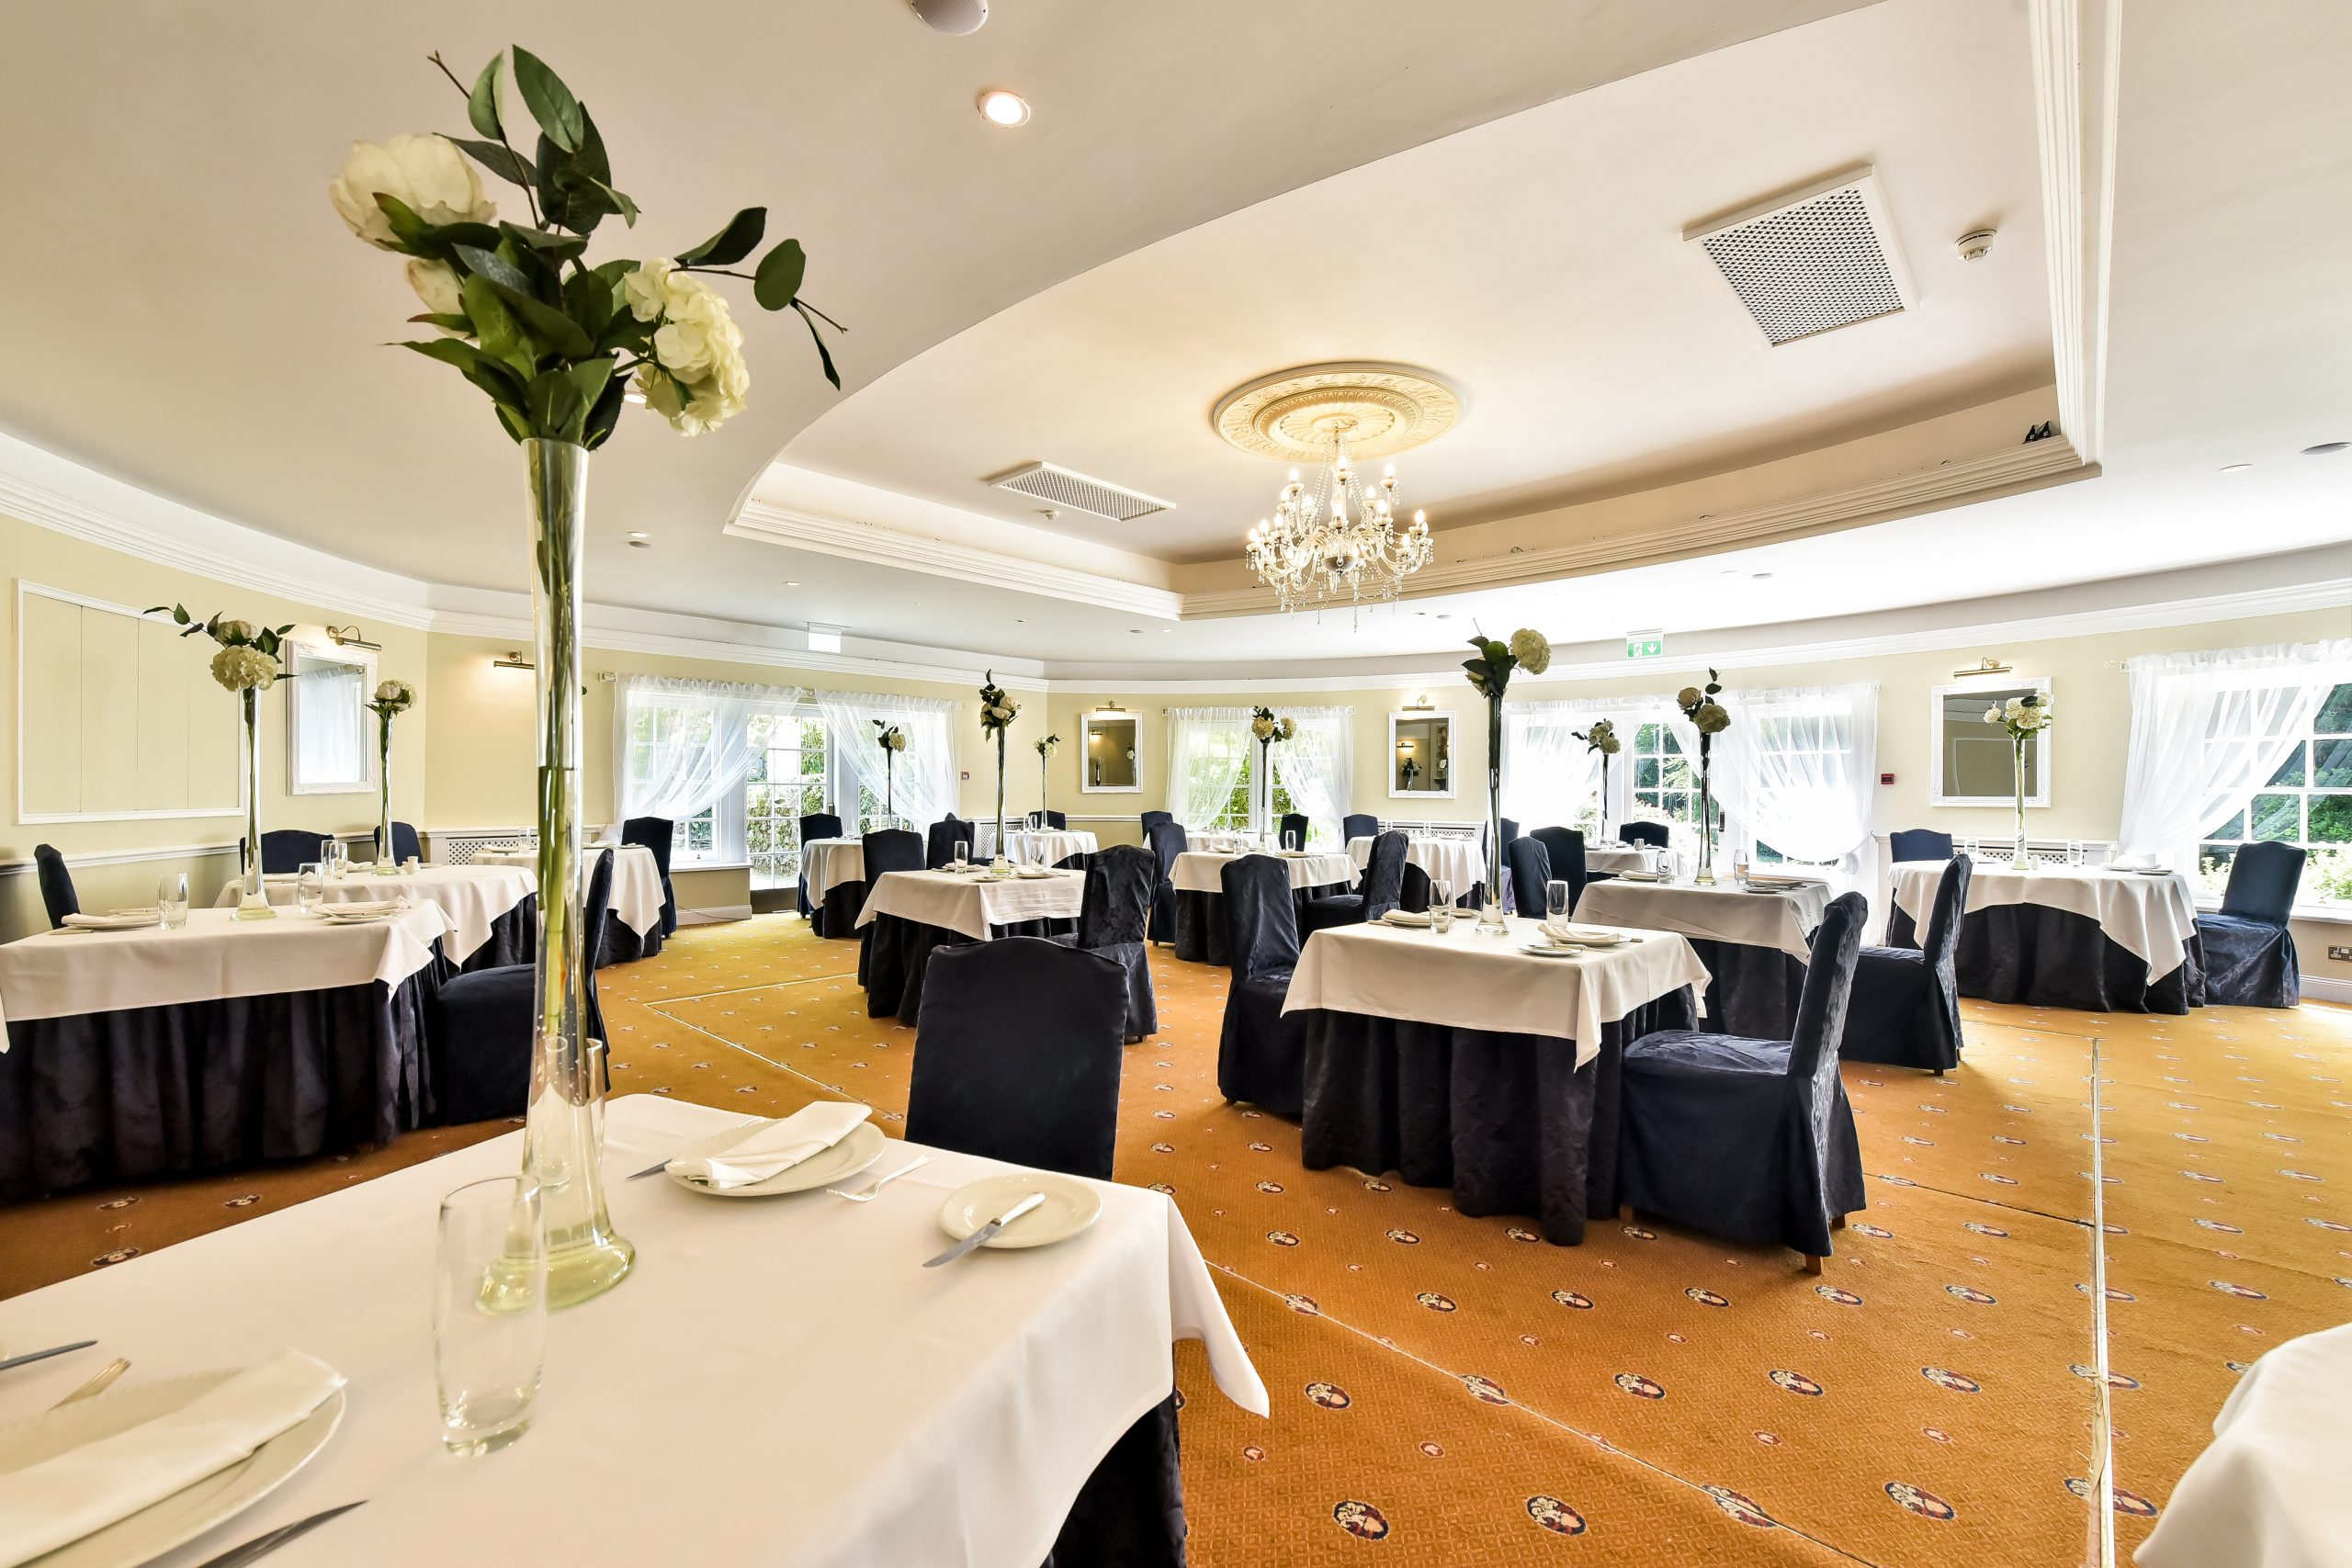 Wedding and conference facilities at Roman Camp Hotel